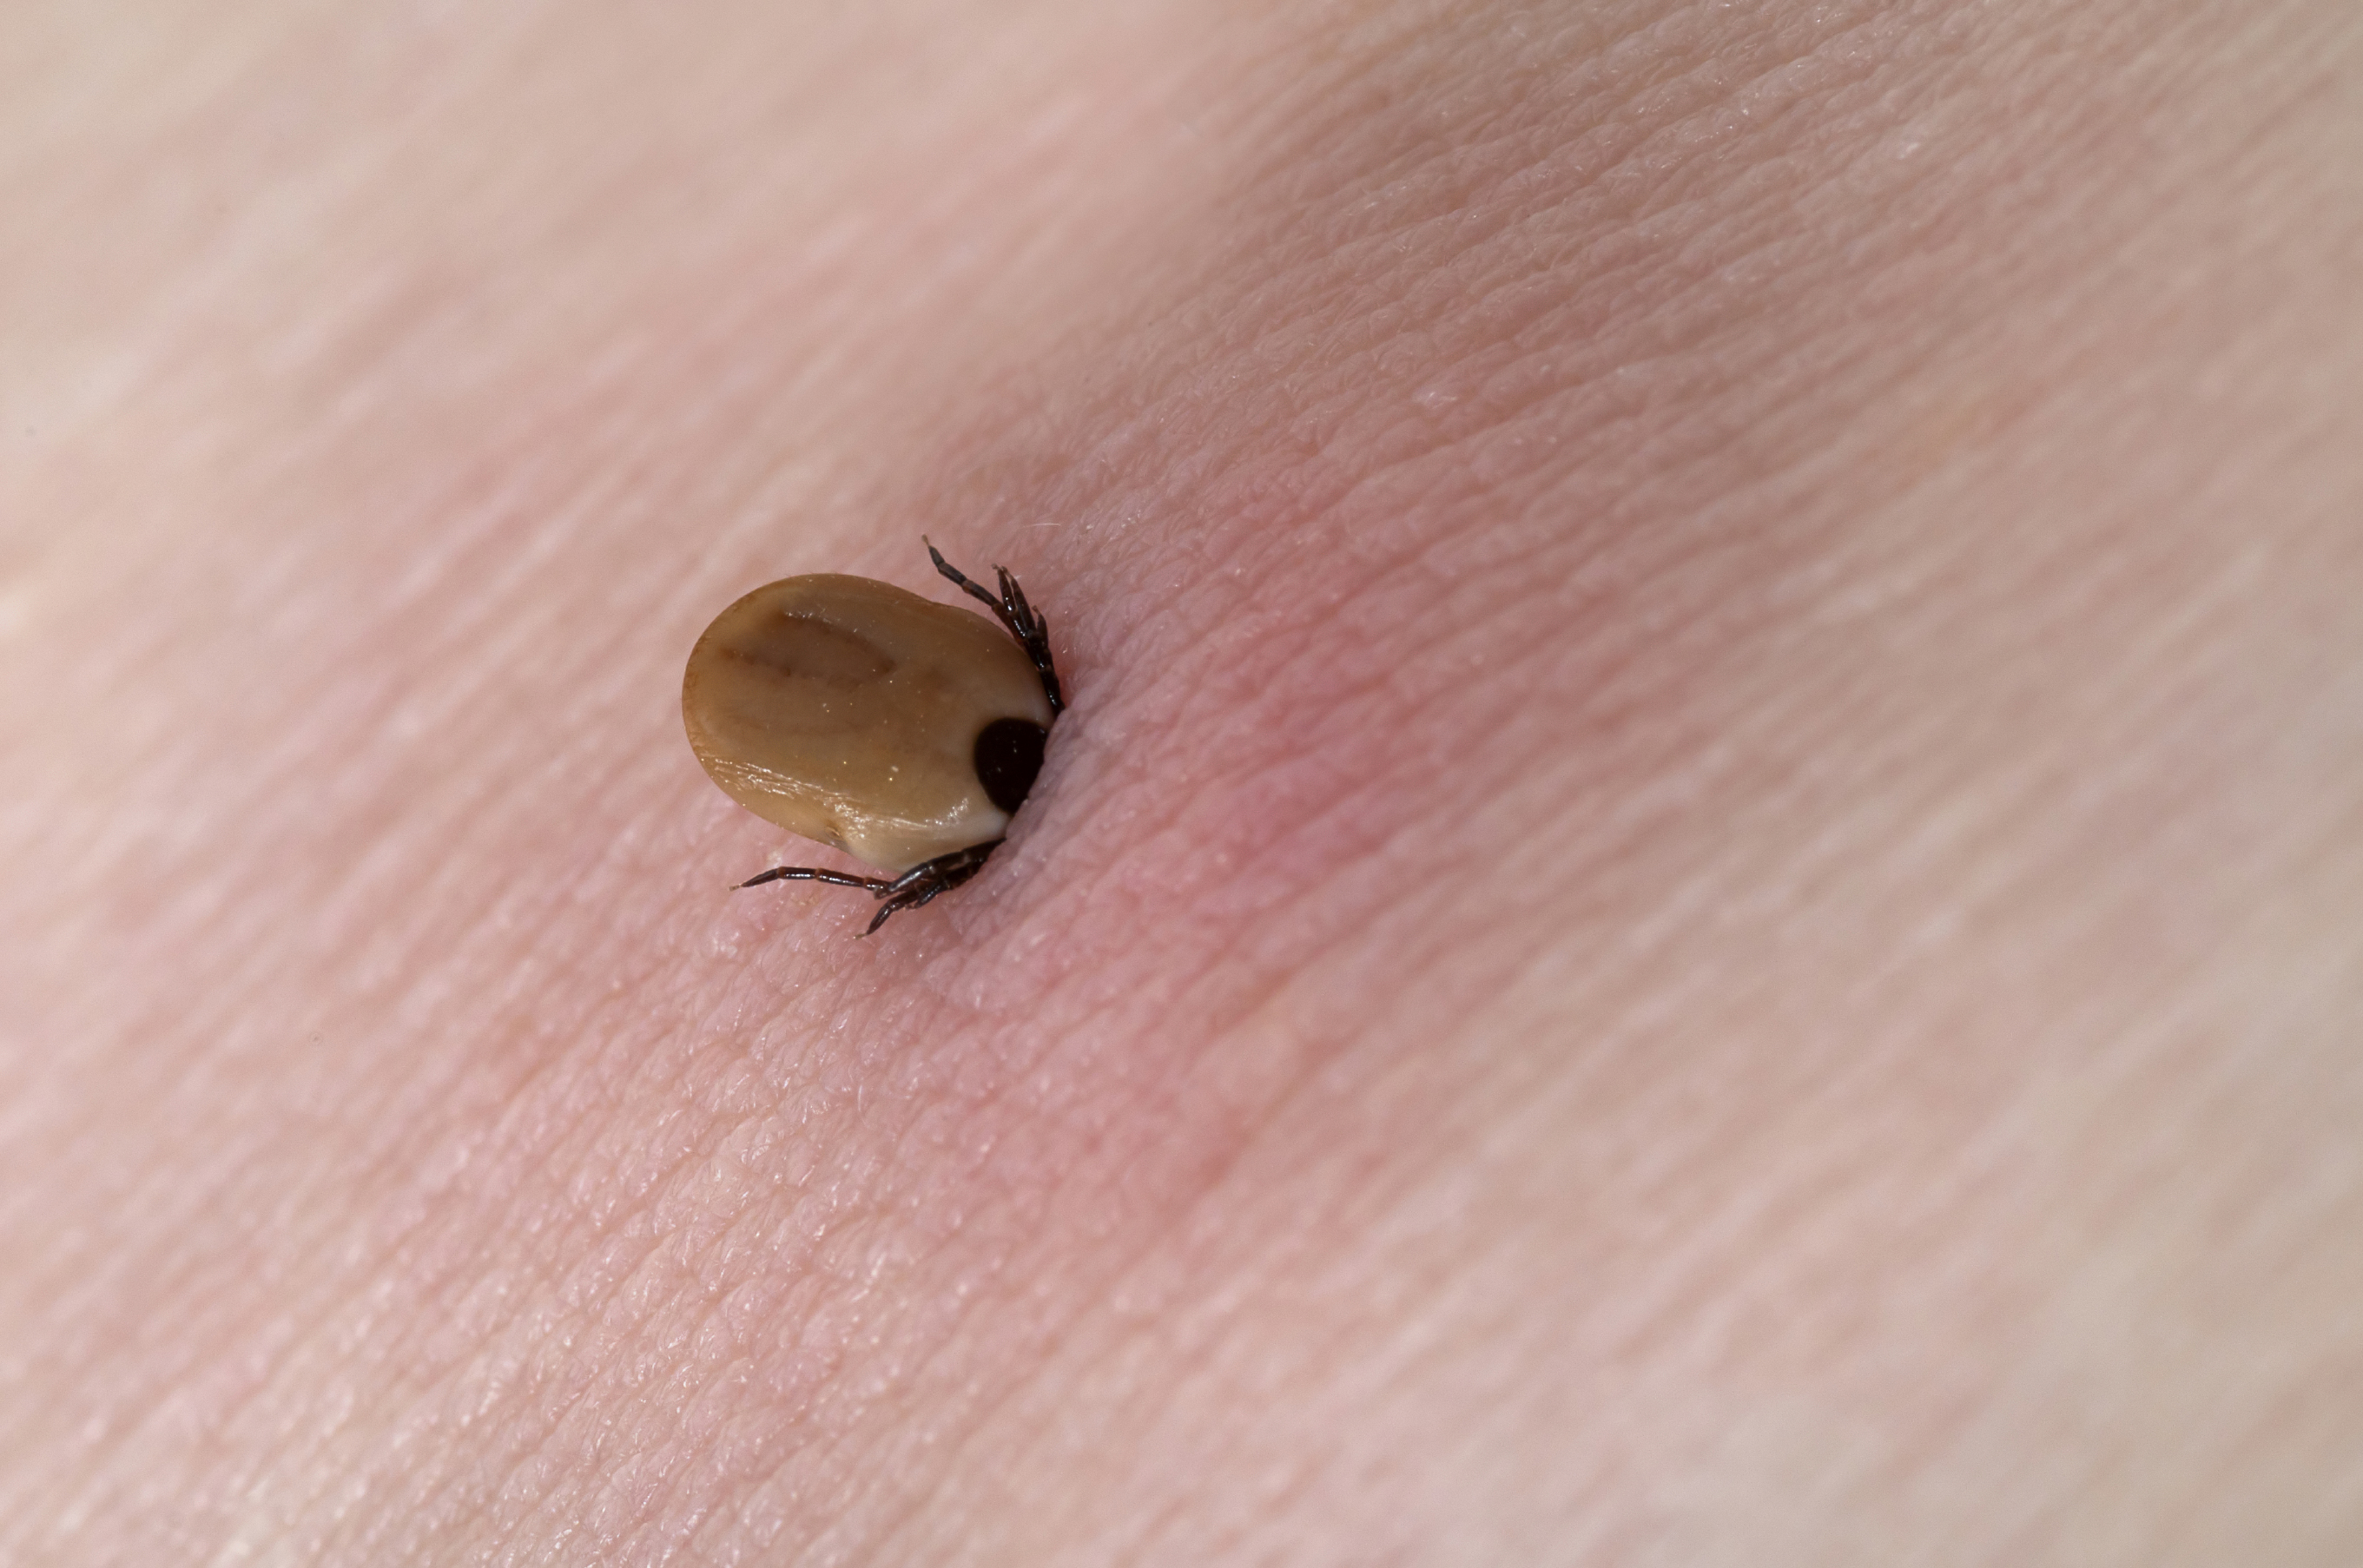 Tick Pictures, Removal, Bite Treatment and Prevention